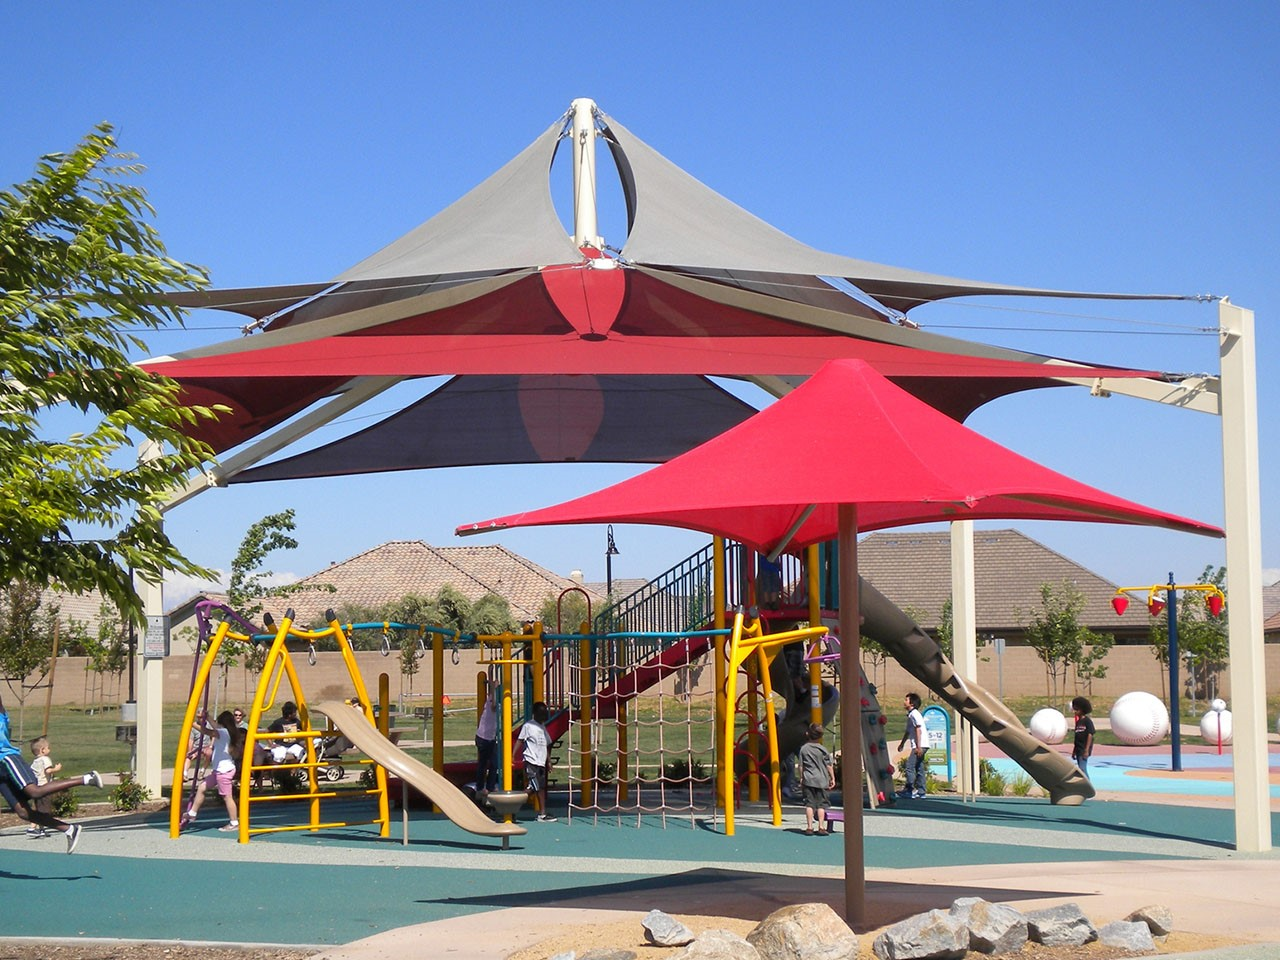 Cool Shade Structures for Parks - Figarden Loop Park